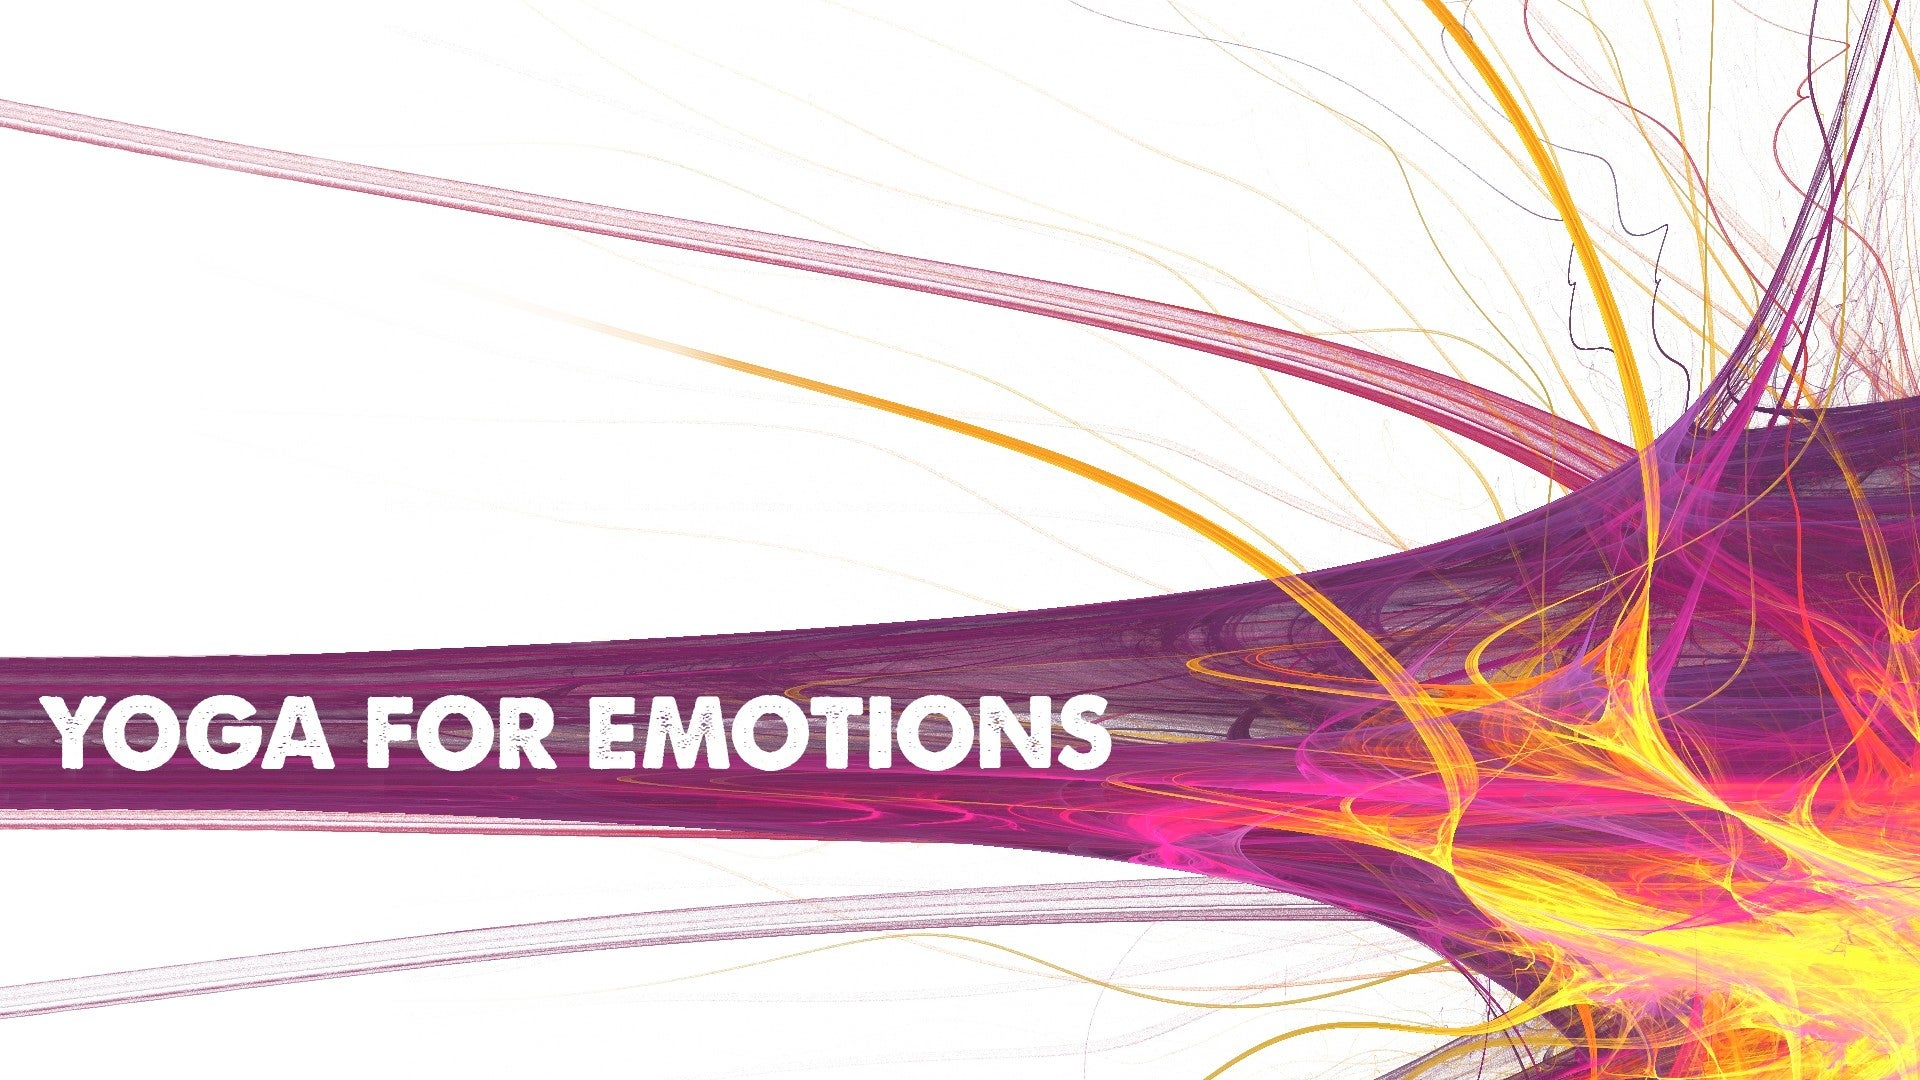 Yoga for Emotions Artwork